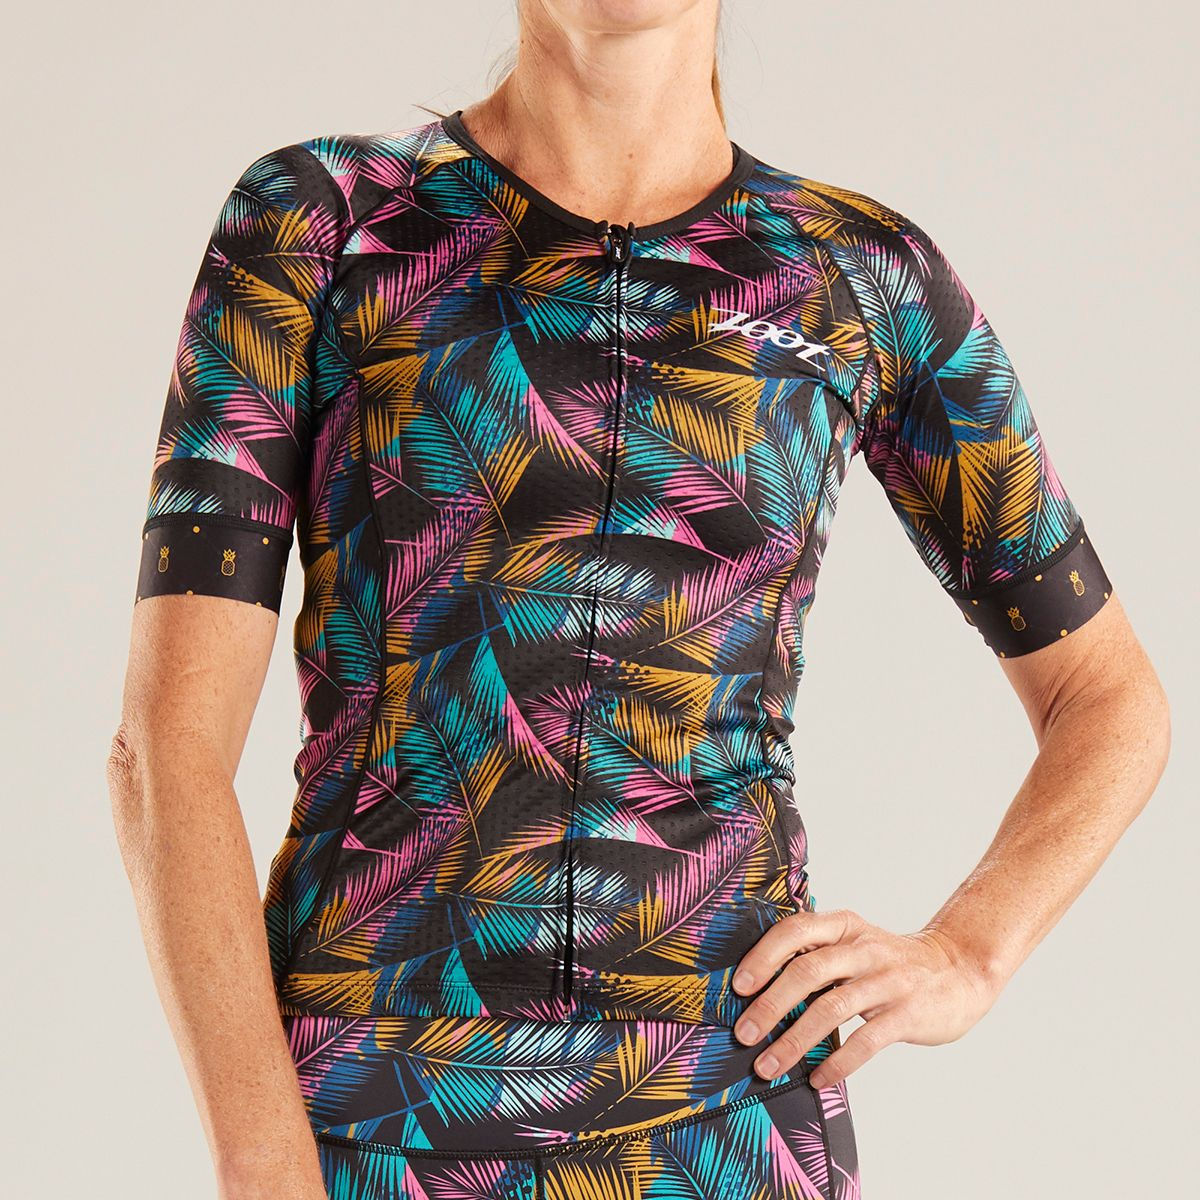 LTD TRI SS AERO JERSEY for Women